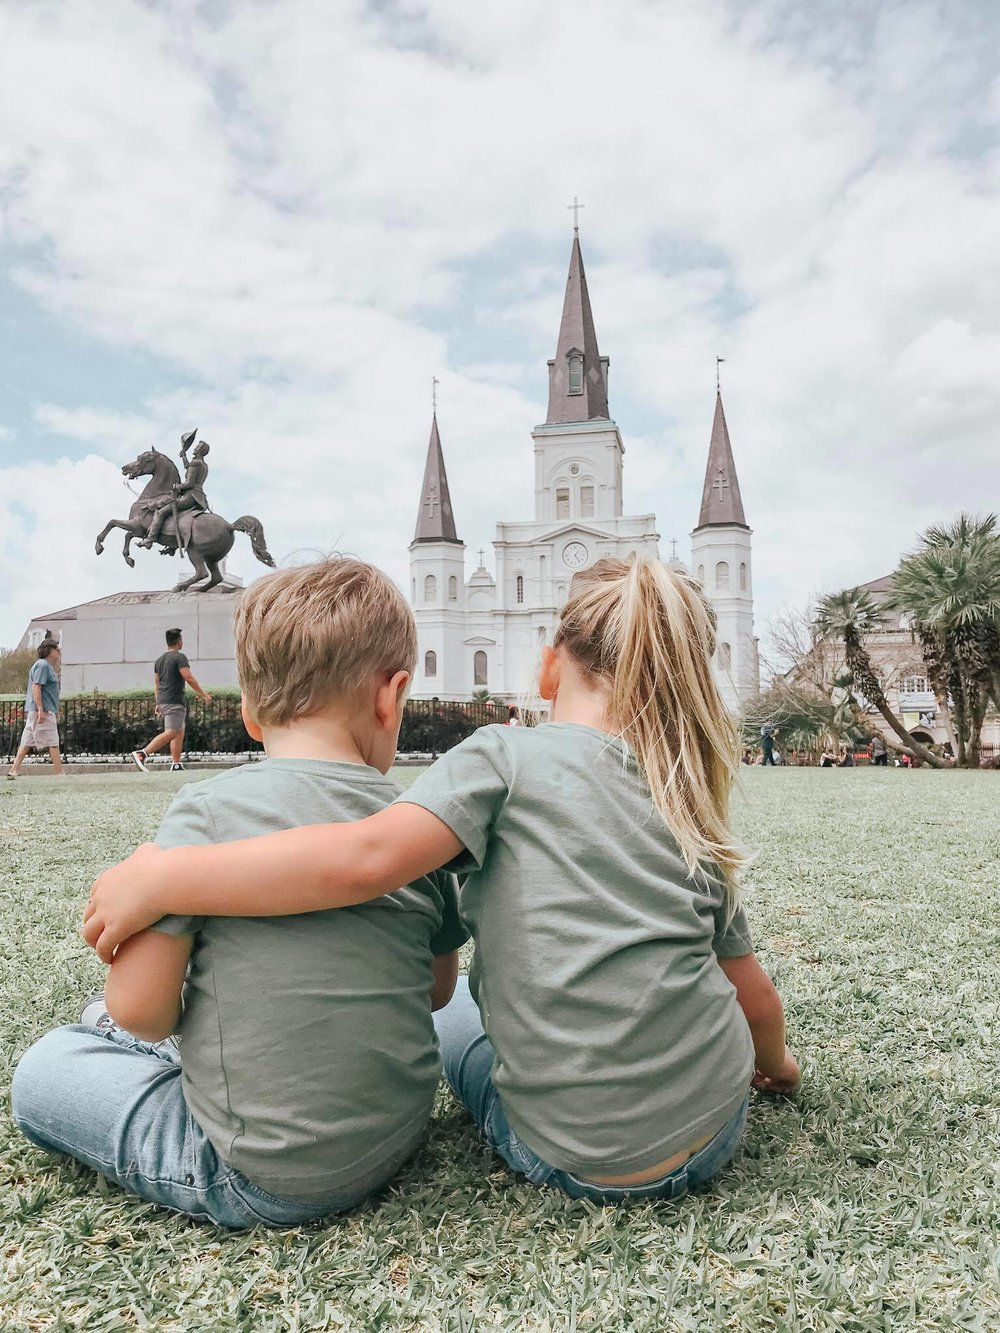 The kids on the lawn in Jackson Square